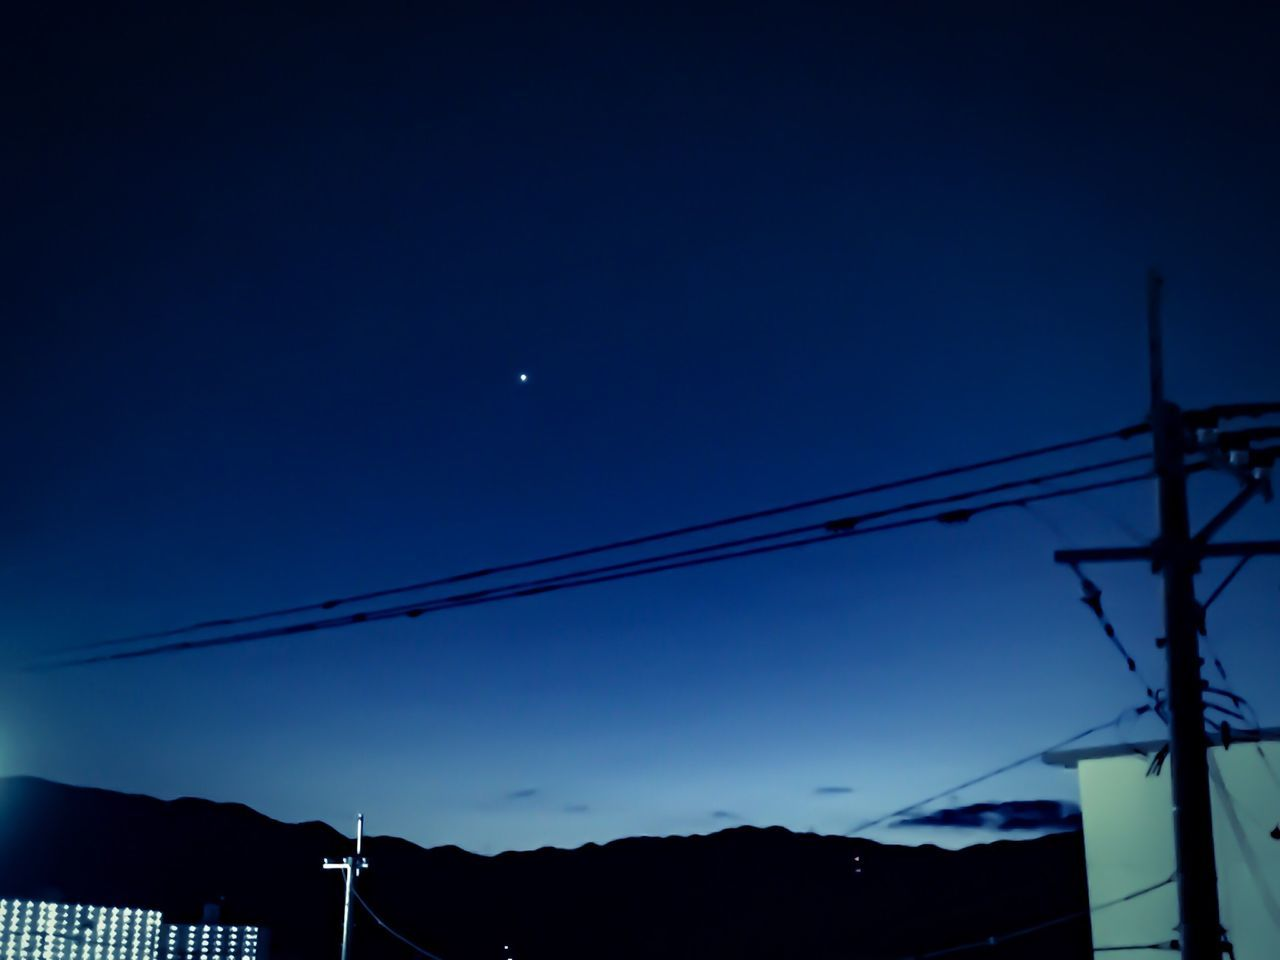 connection, low angle view, cable, moon, electricity, blue, silhouette, power supply, power line, no people, sky, nature, outdoors, clear sky, technology, night, electricity pylon, beauty in nature, astronomy